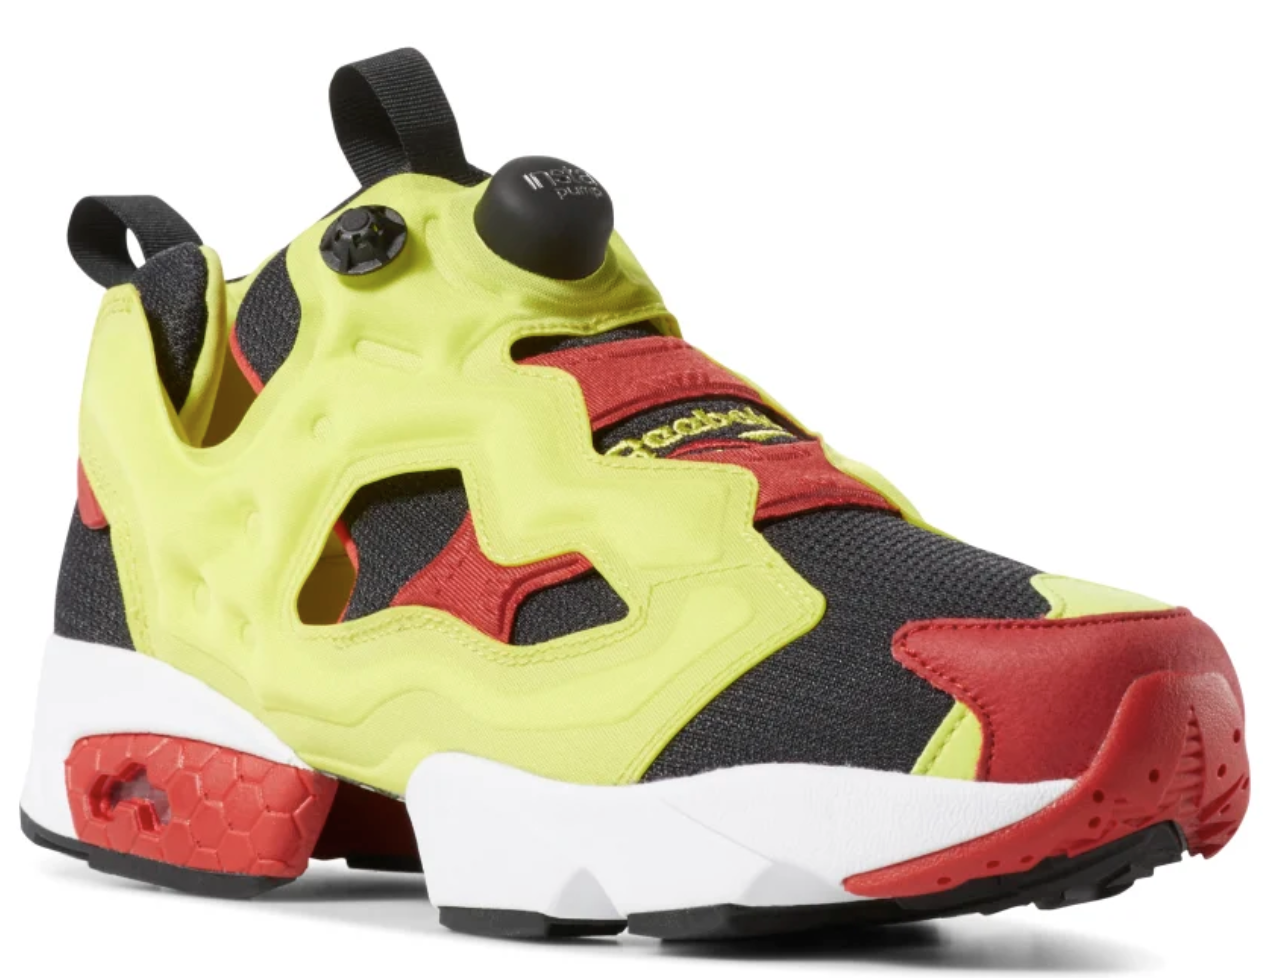 """The Reebok Instapump Fury to Re-Release In Japan For """"Pump Day"""""""